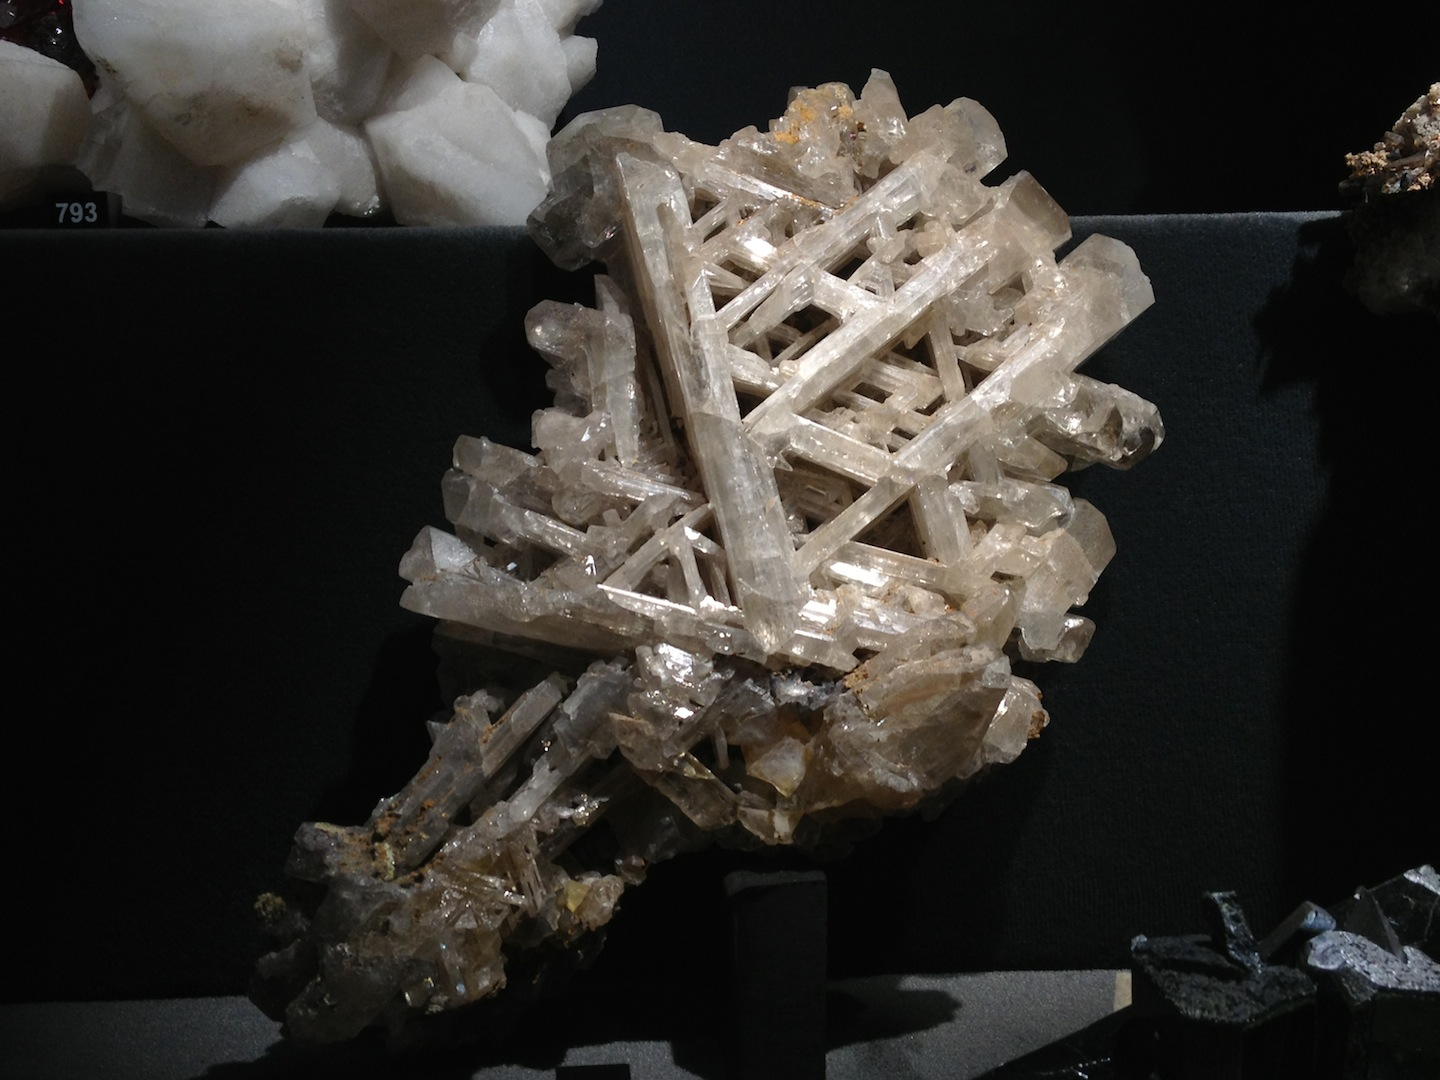 Crystal-Exhibition-La-Specola-Florence-Italy-jessewaugh.com-14.jpg